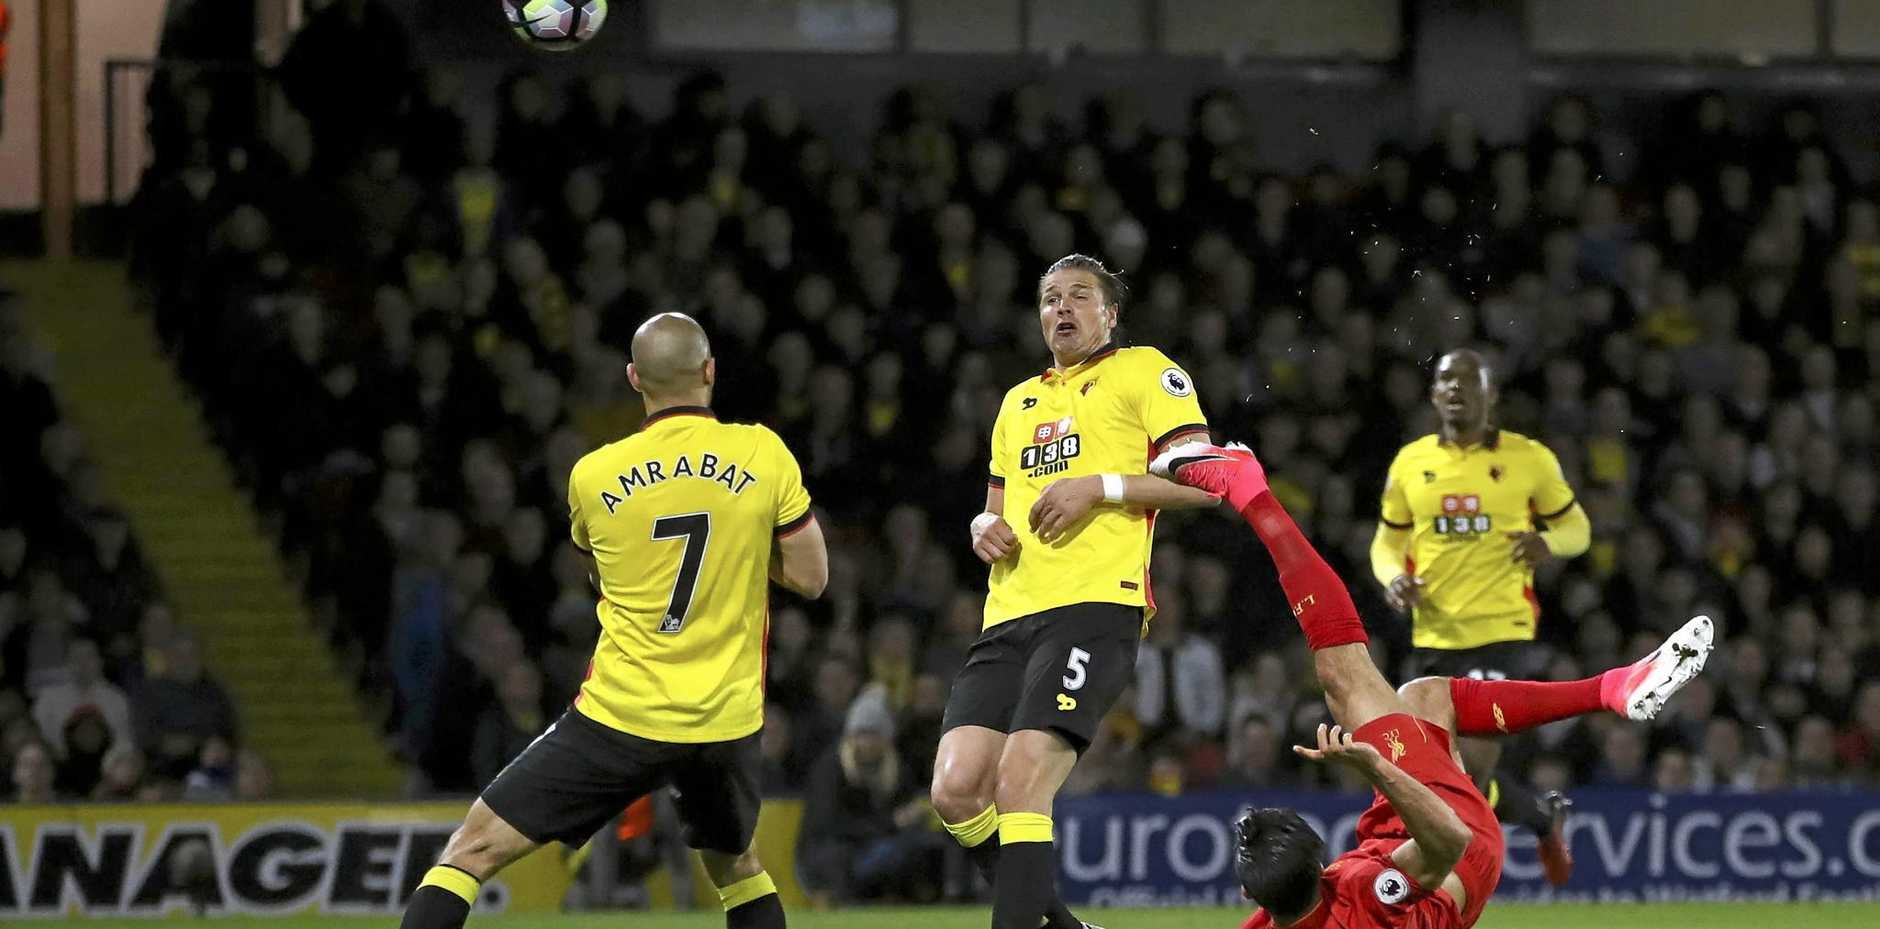 Liverpool's Emre Can scores against Watford.